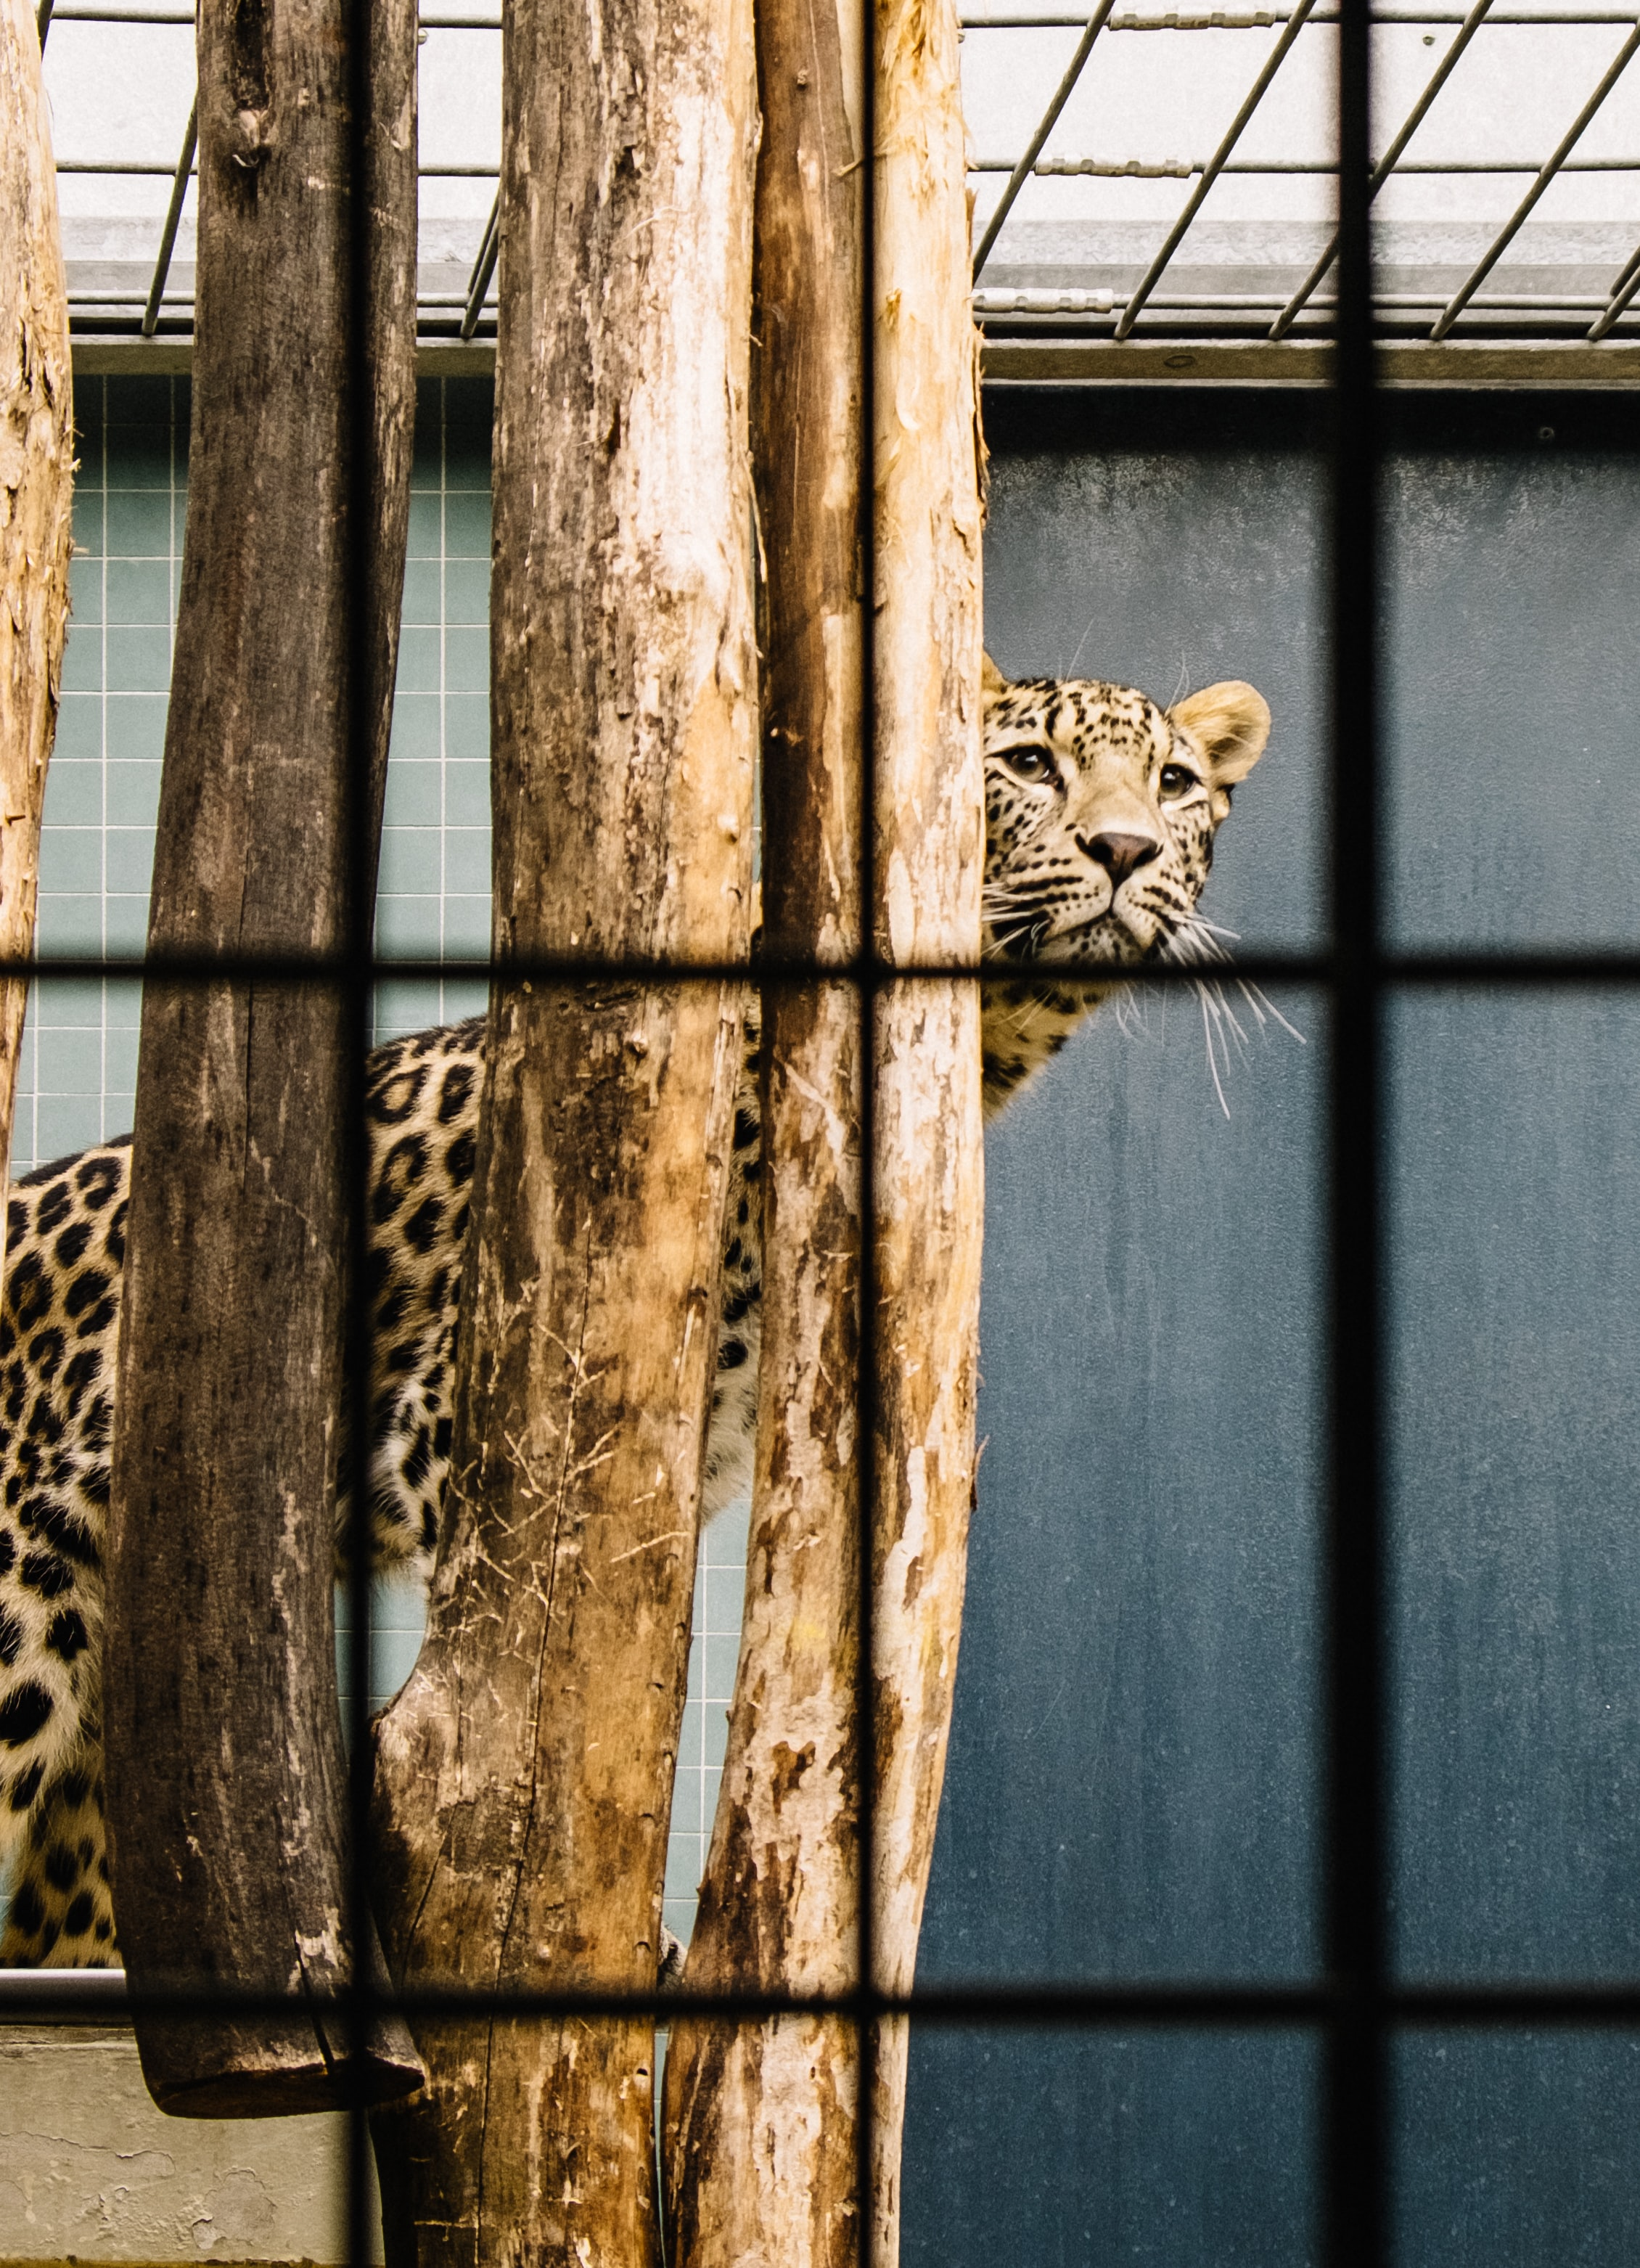 A leopard looking out from behind vertically arranged wood logs in a cage